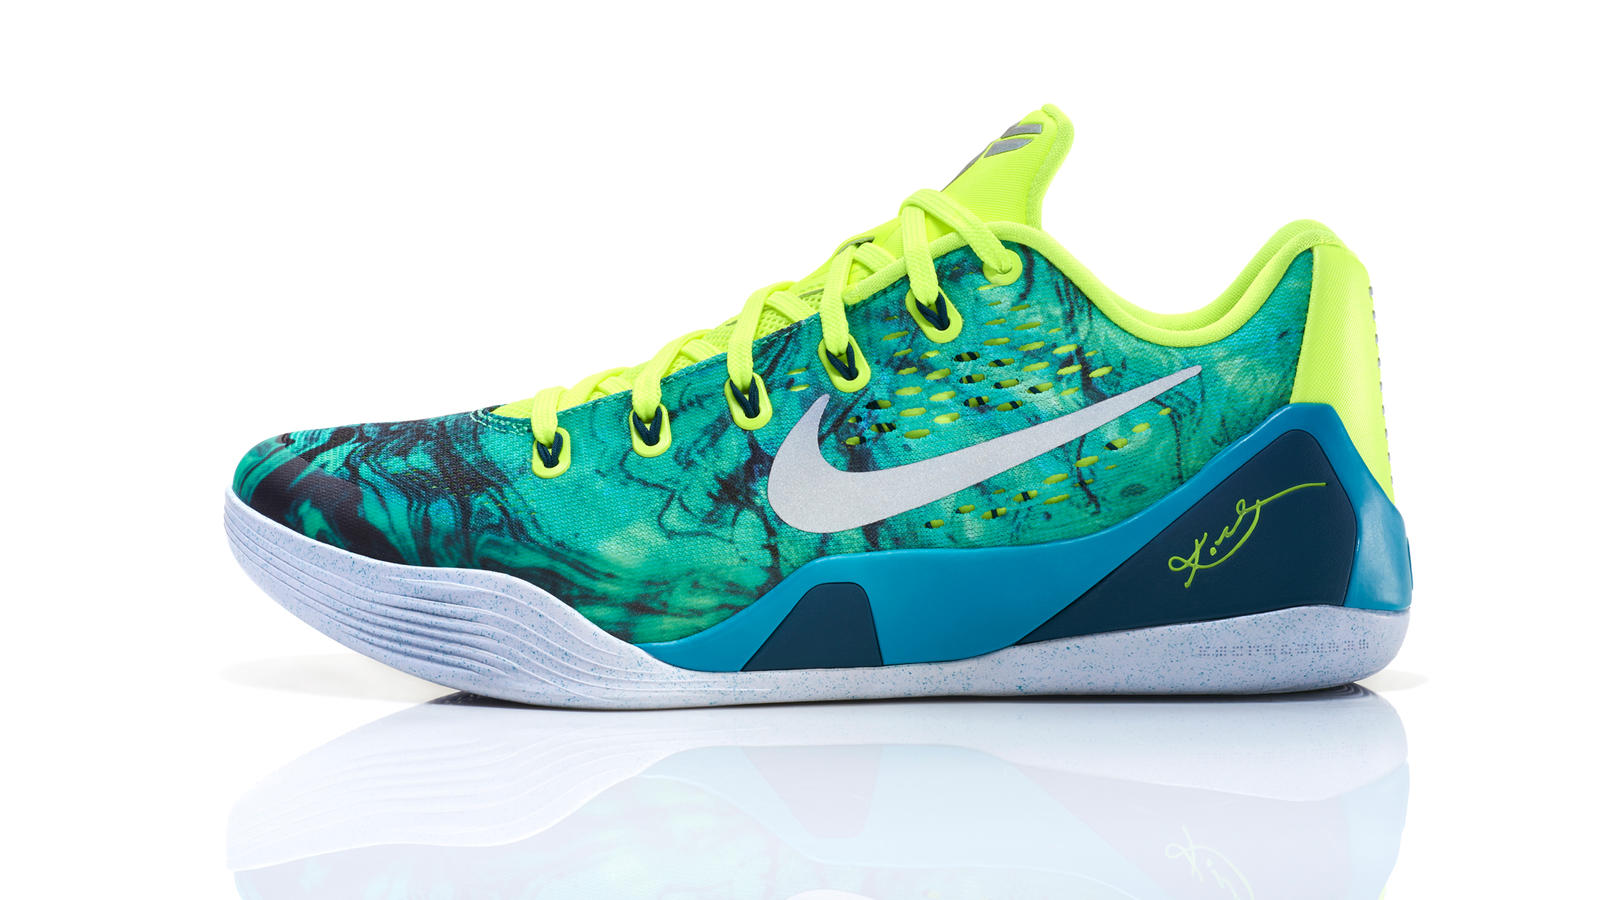 sports shoes abef1 68a11 The 2014 Nike Basketball Easter Collection - Nike News